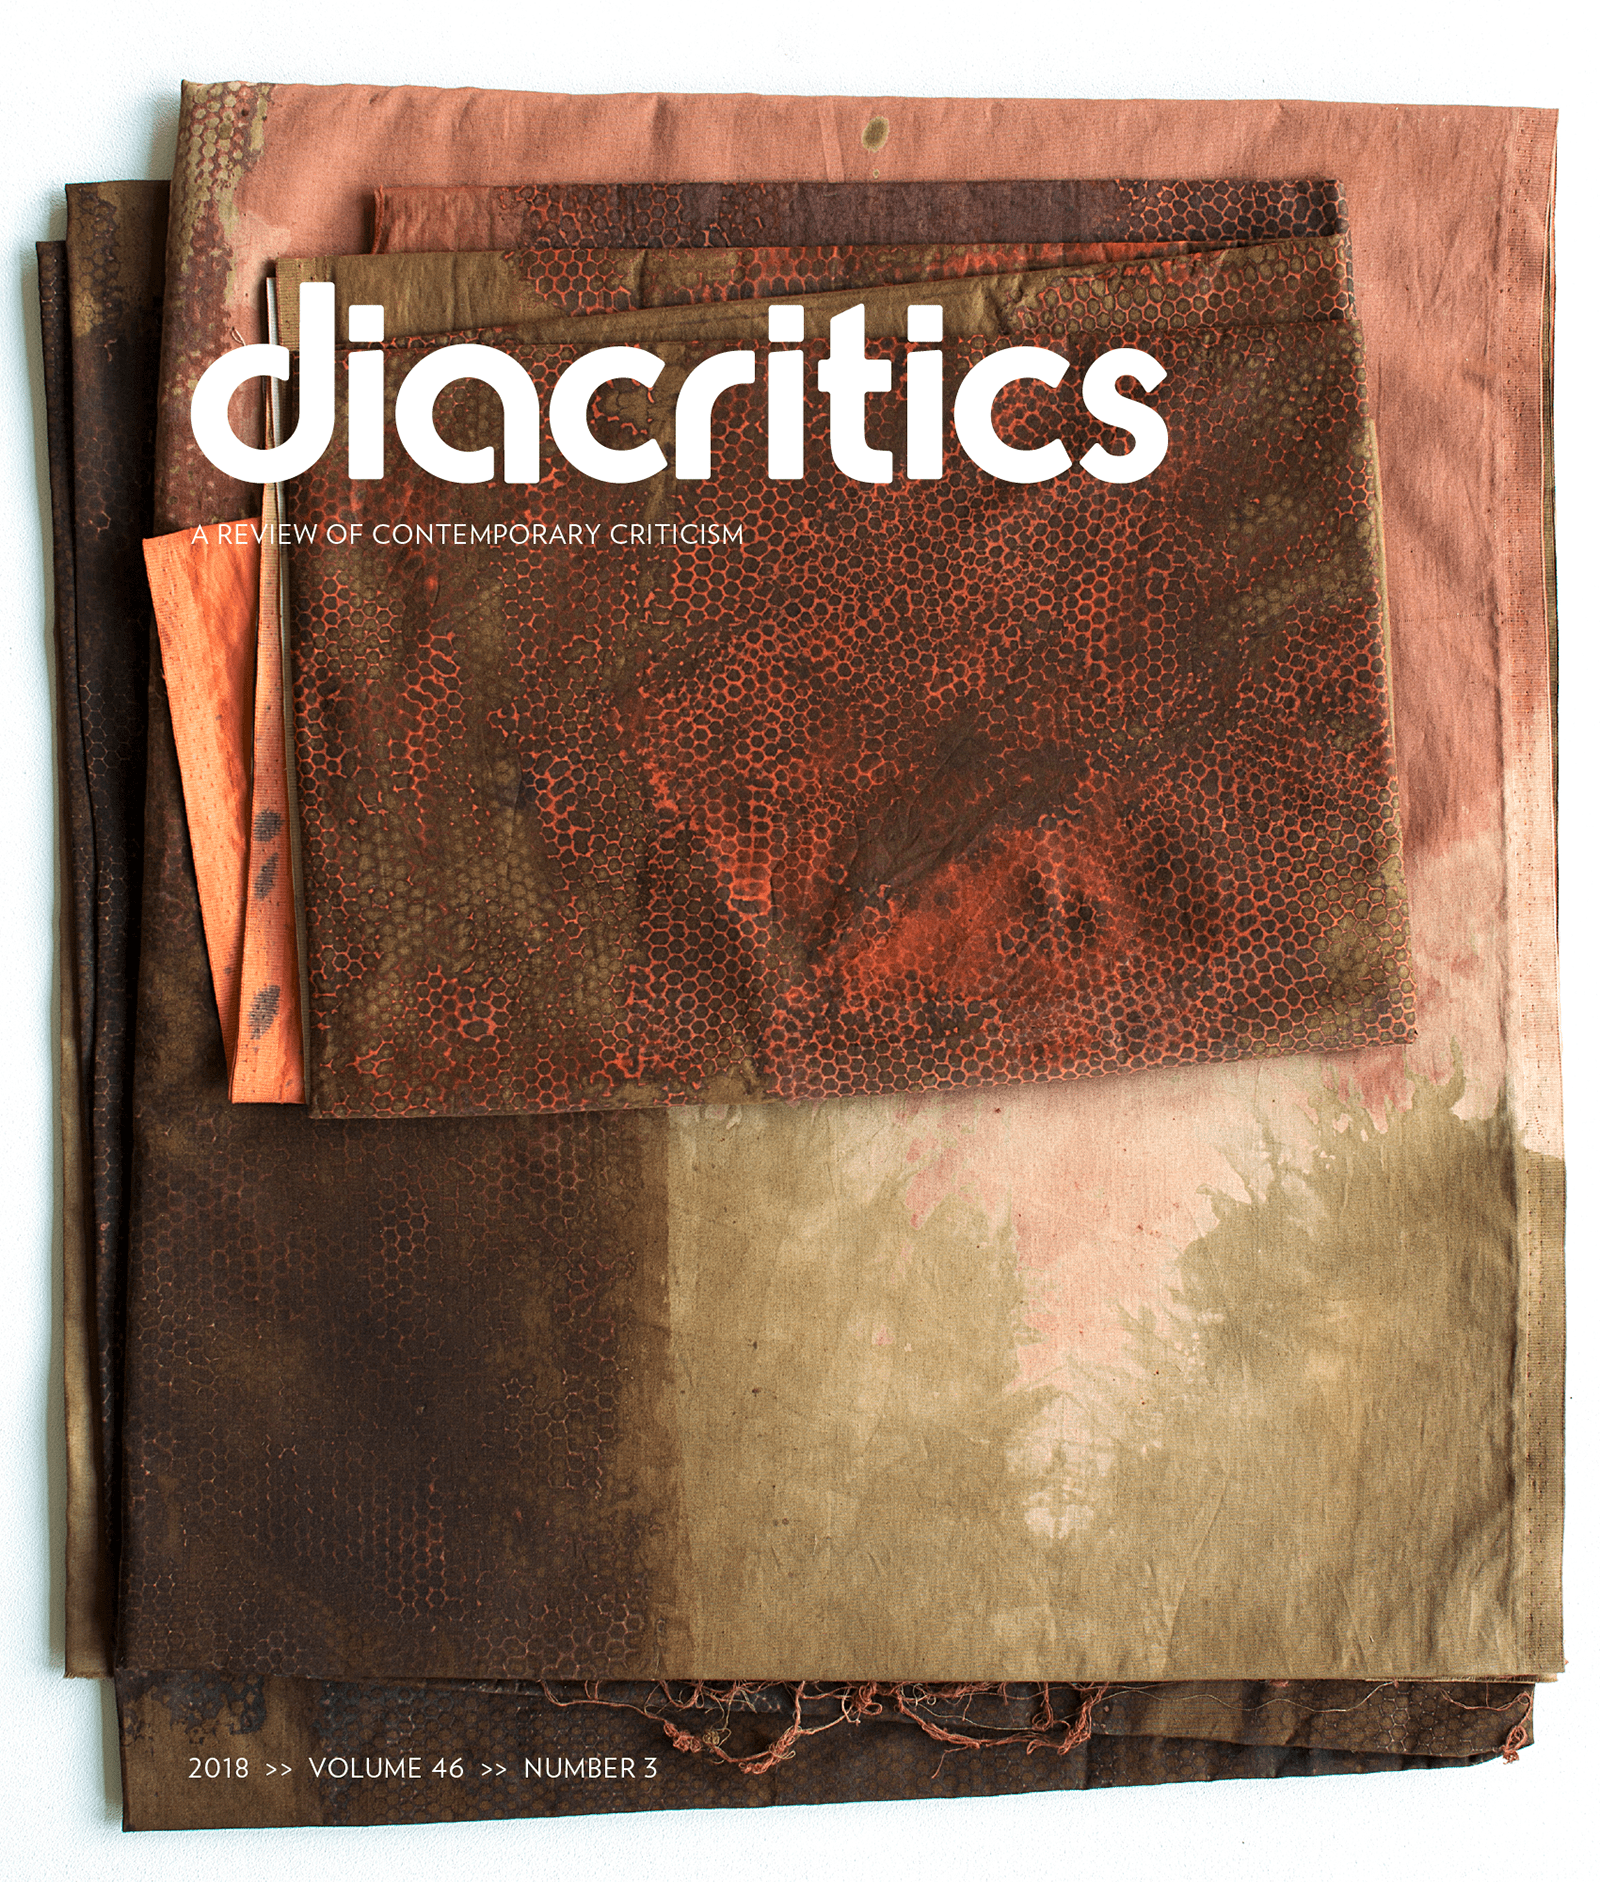 DIACRITICS VOLUME 46 NUMBER 3 2018